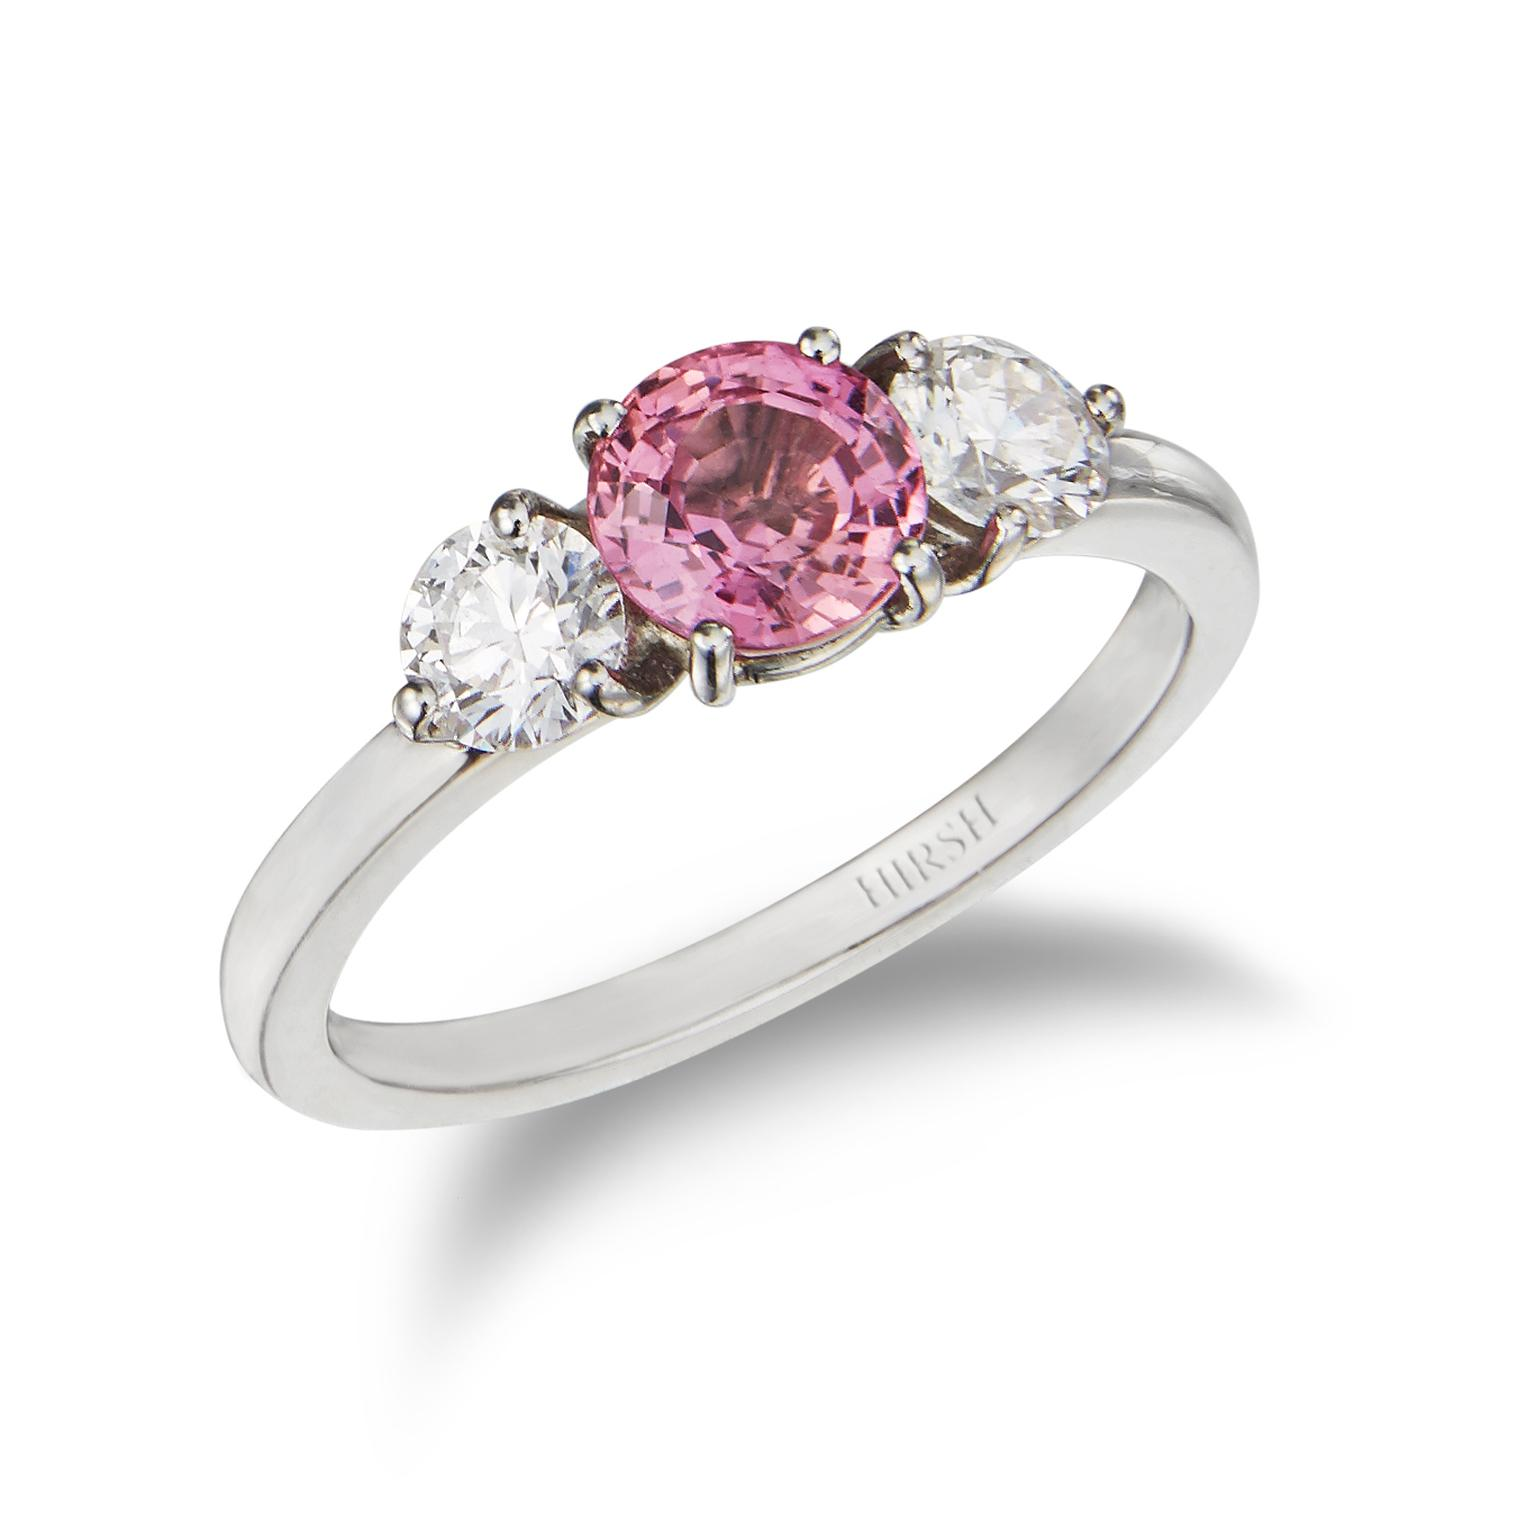 Hirsh London padparadscha ring